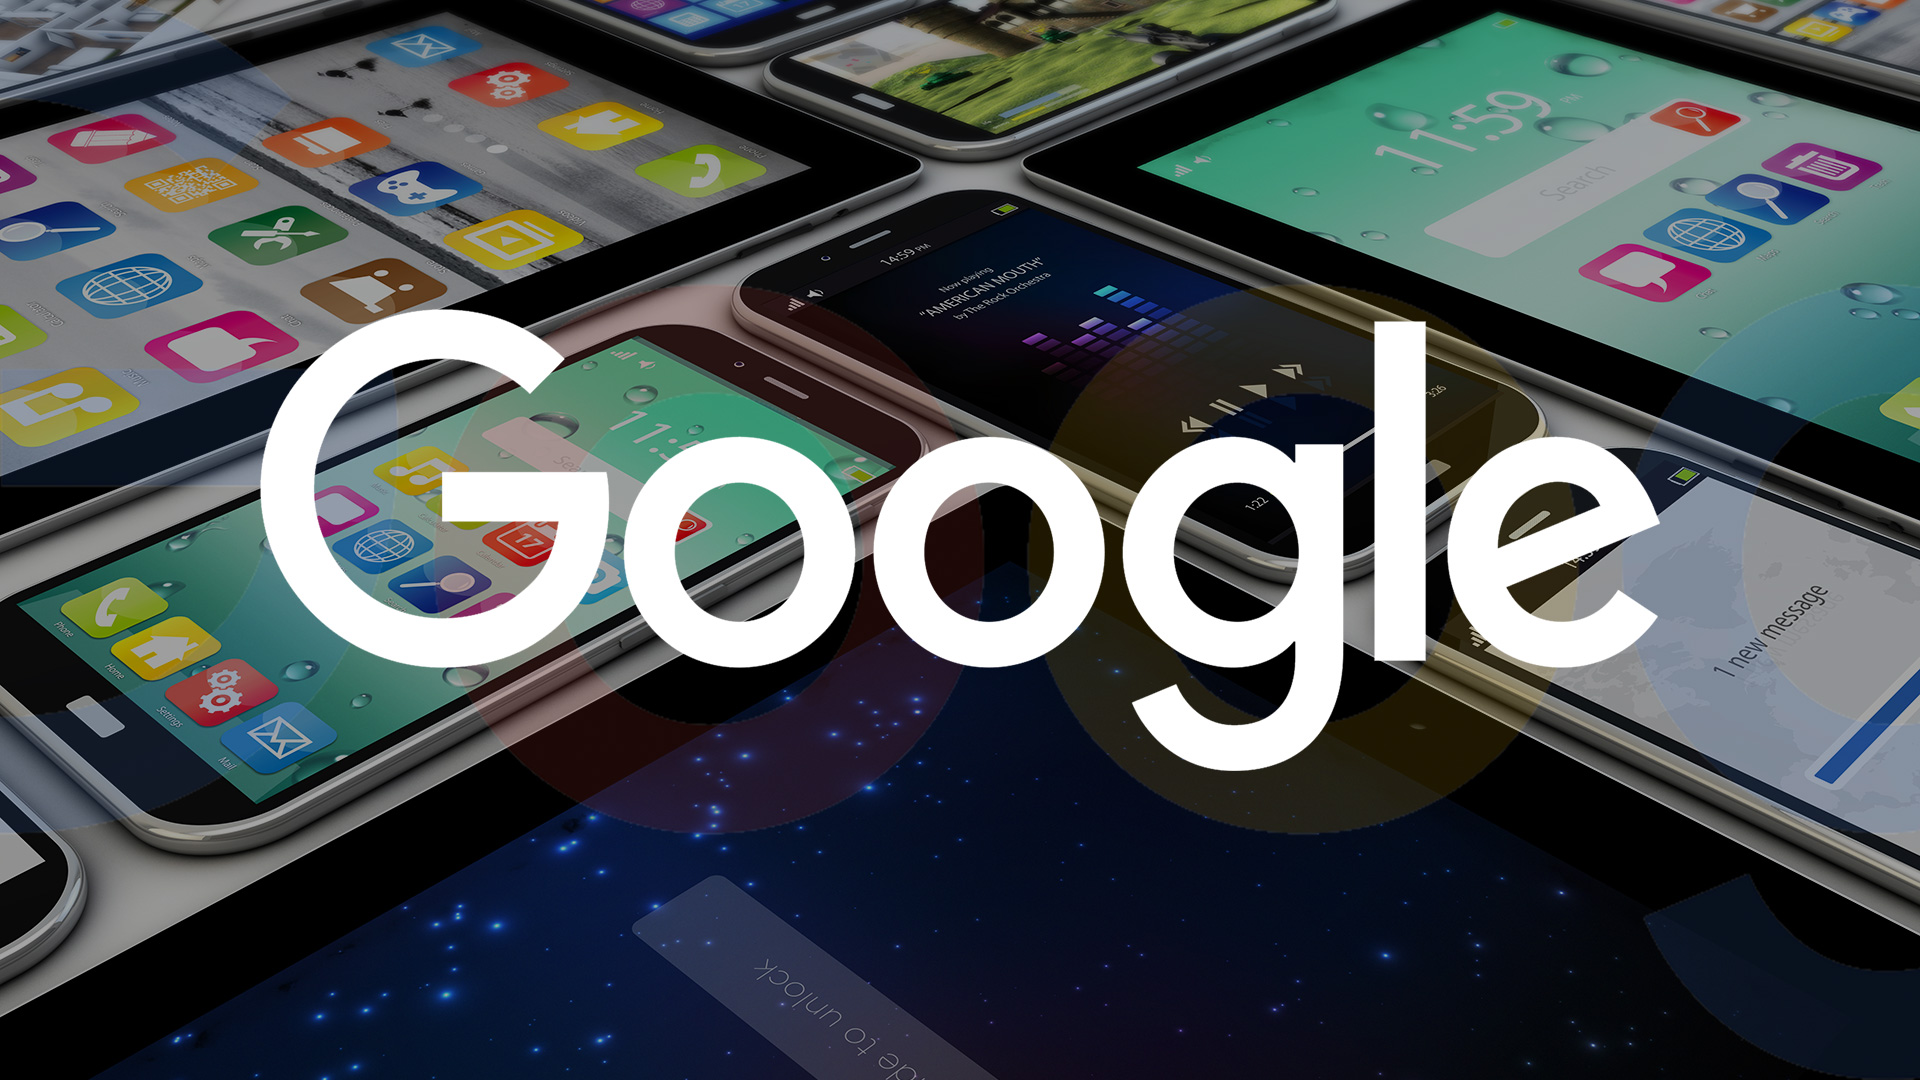 google-iphone-mobile-ss-1920-800x450 Digital Digest: Marketing roundup August 2017